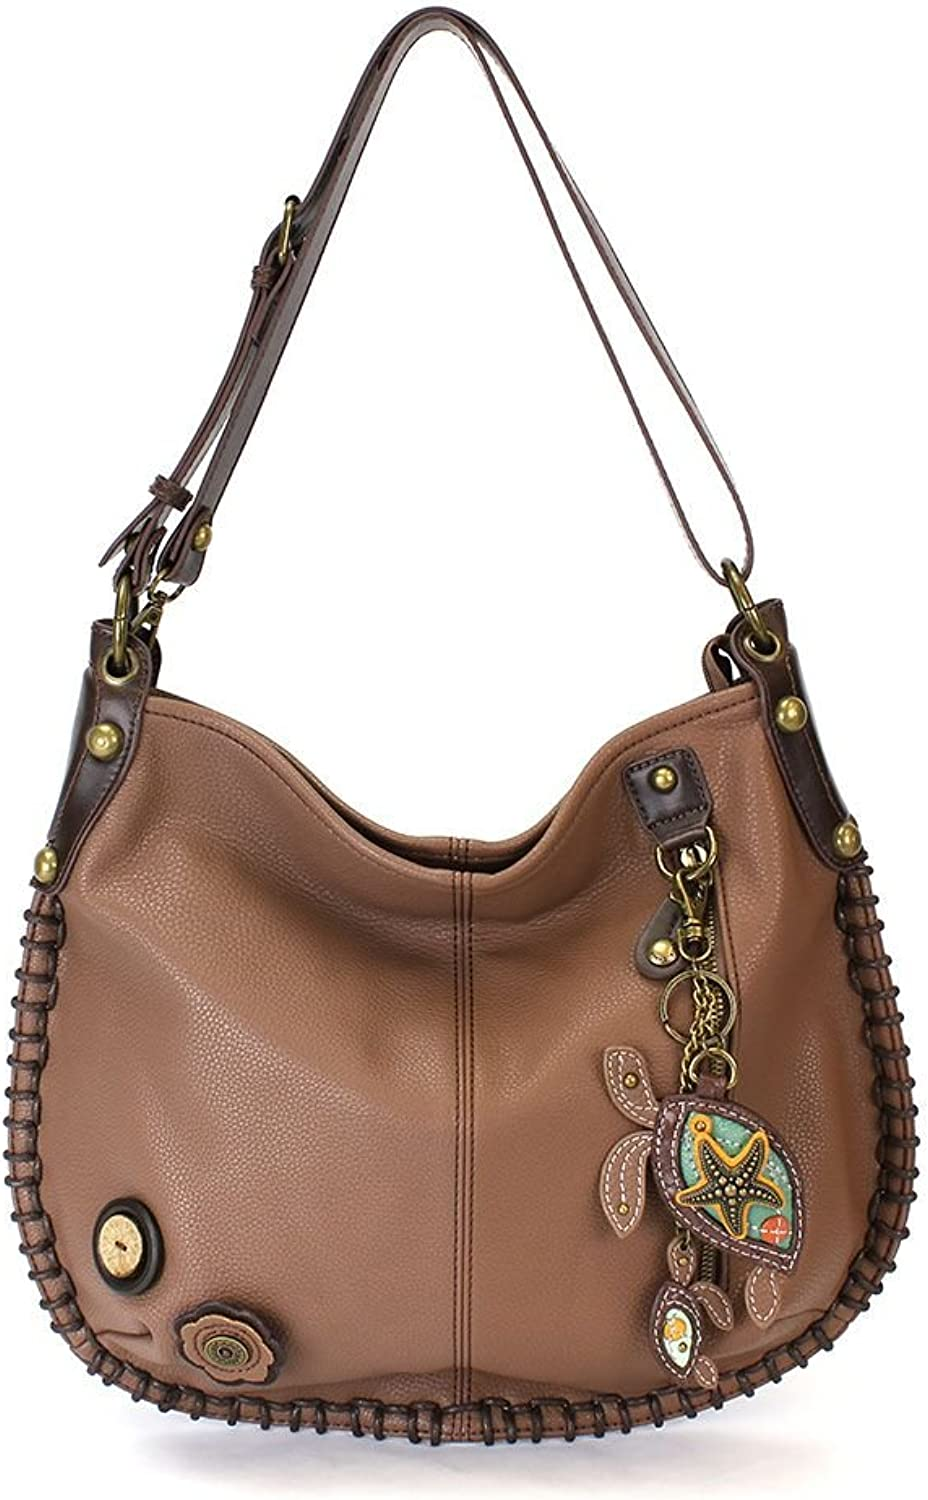 Chala Extra Large Charming Hobo Xbody with Adjustable Strap Sea Turtle   Brown